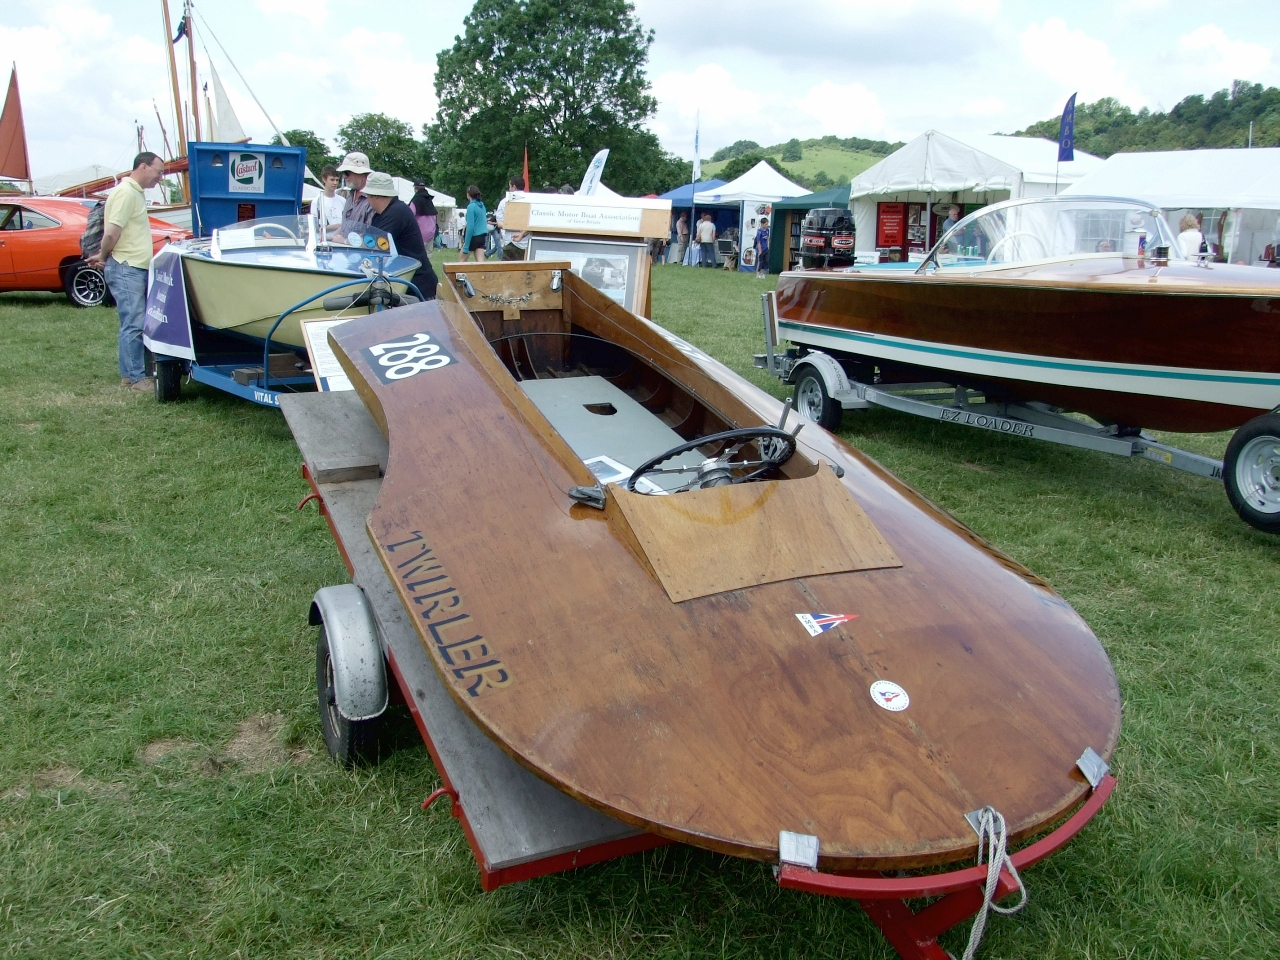 A hydroplane at the Beale Park Boat Show – intheboatshed.net